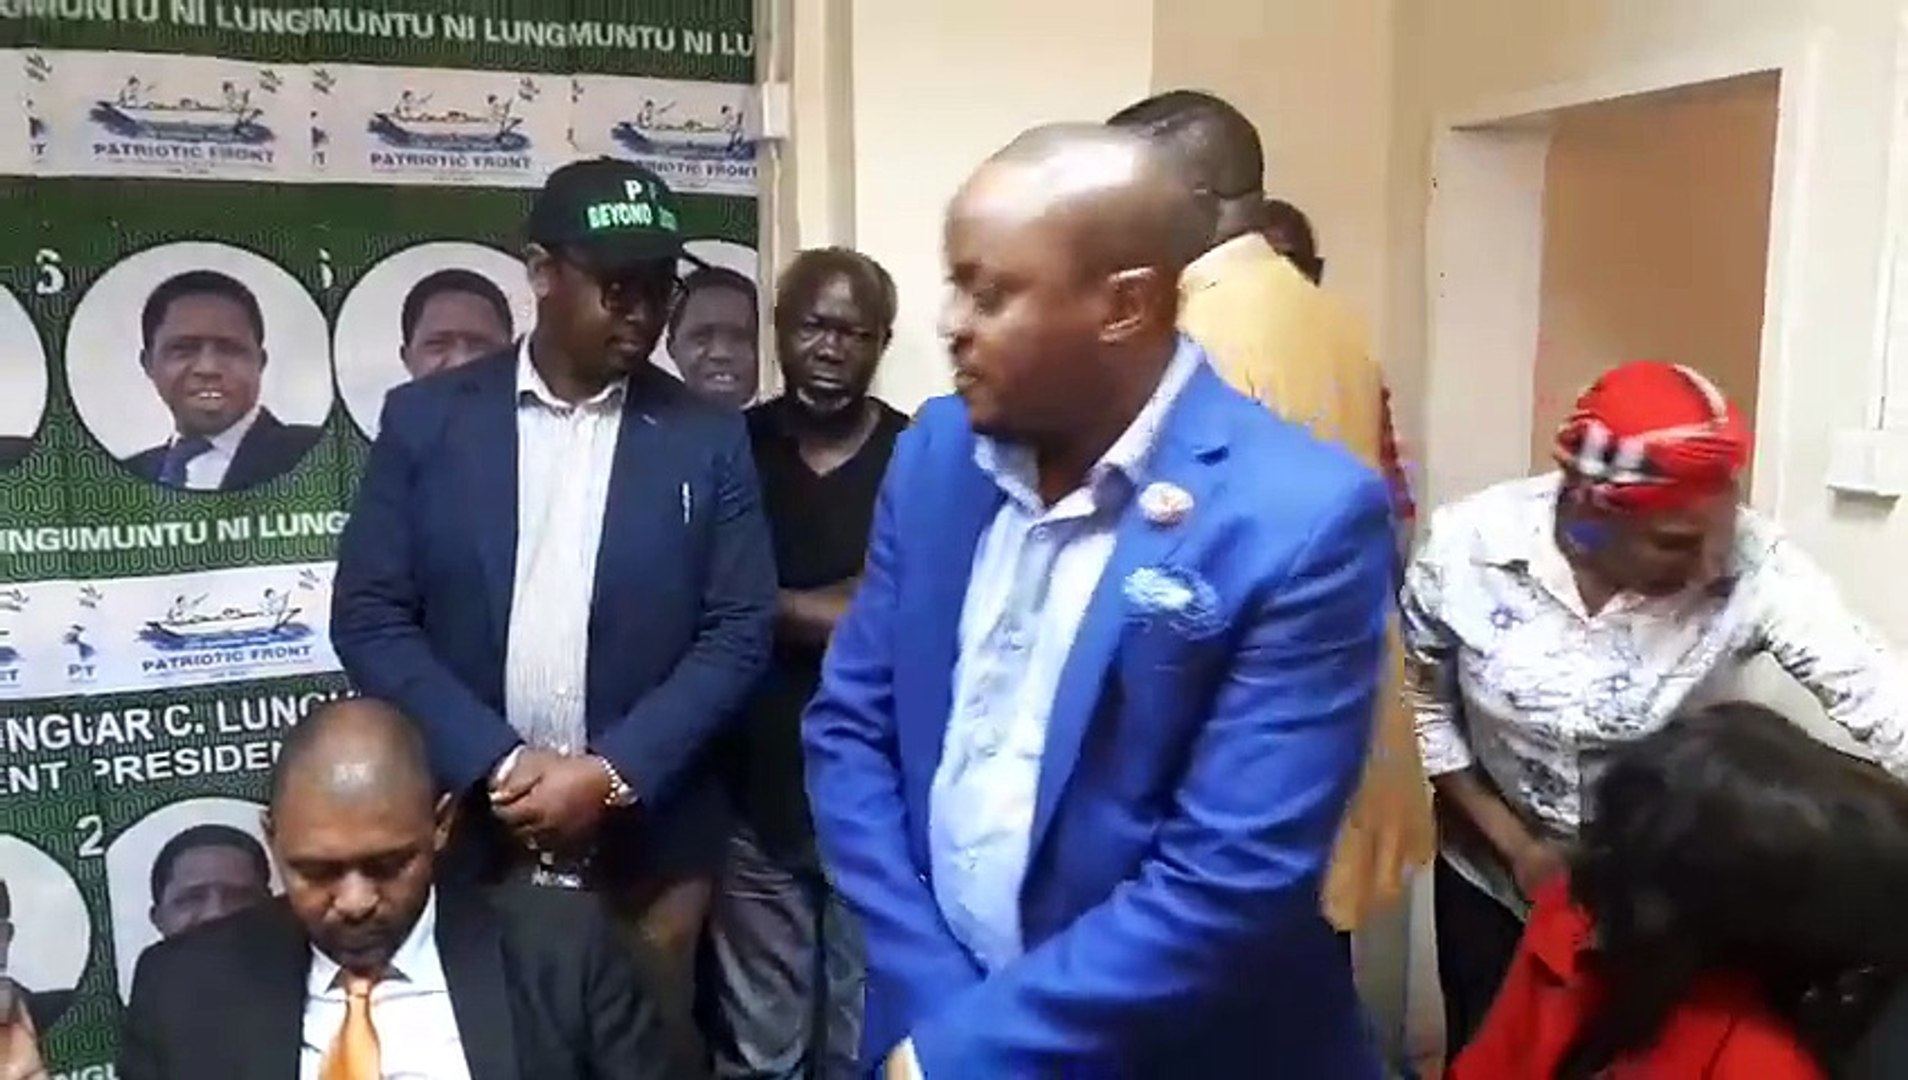 RULING PATRIOTIC FRONT (PF) PARTY SECRETARY GENERAL ADDRESSES THE MEDIA.We are streaming live from t